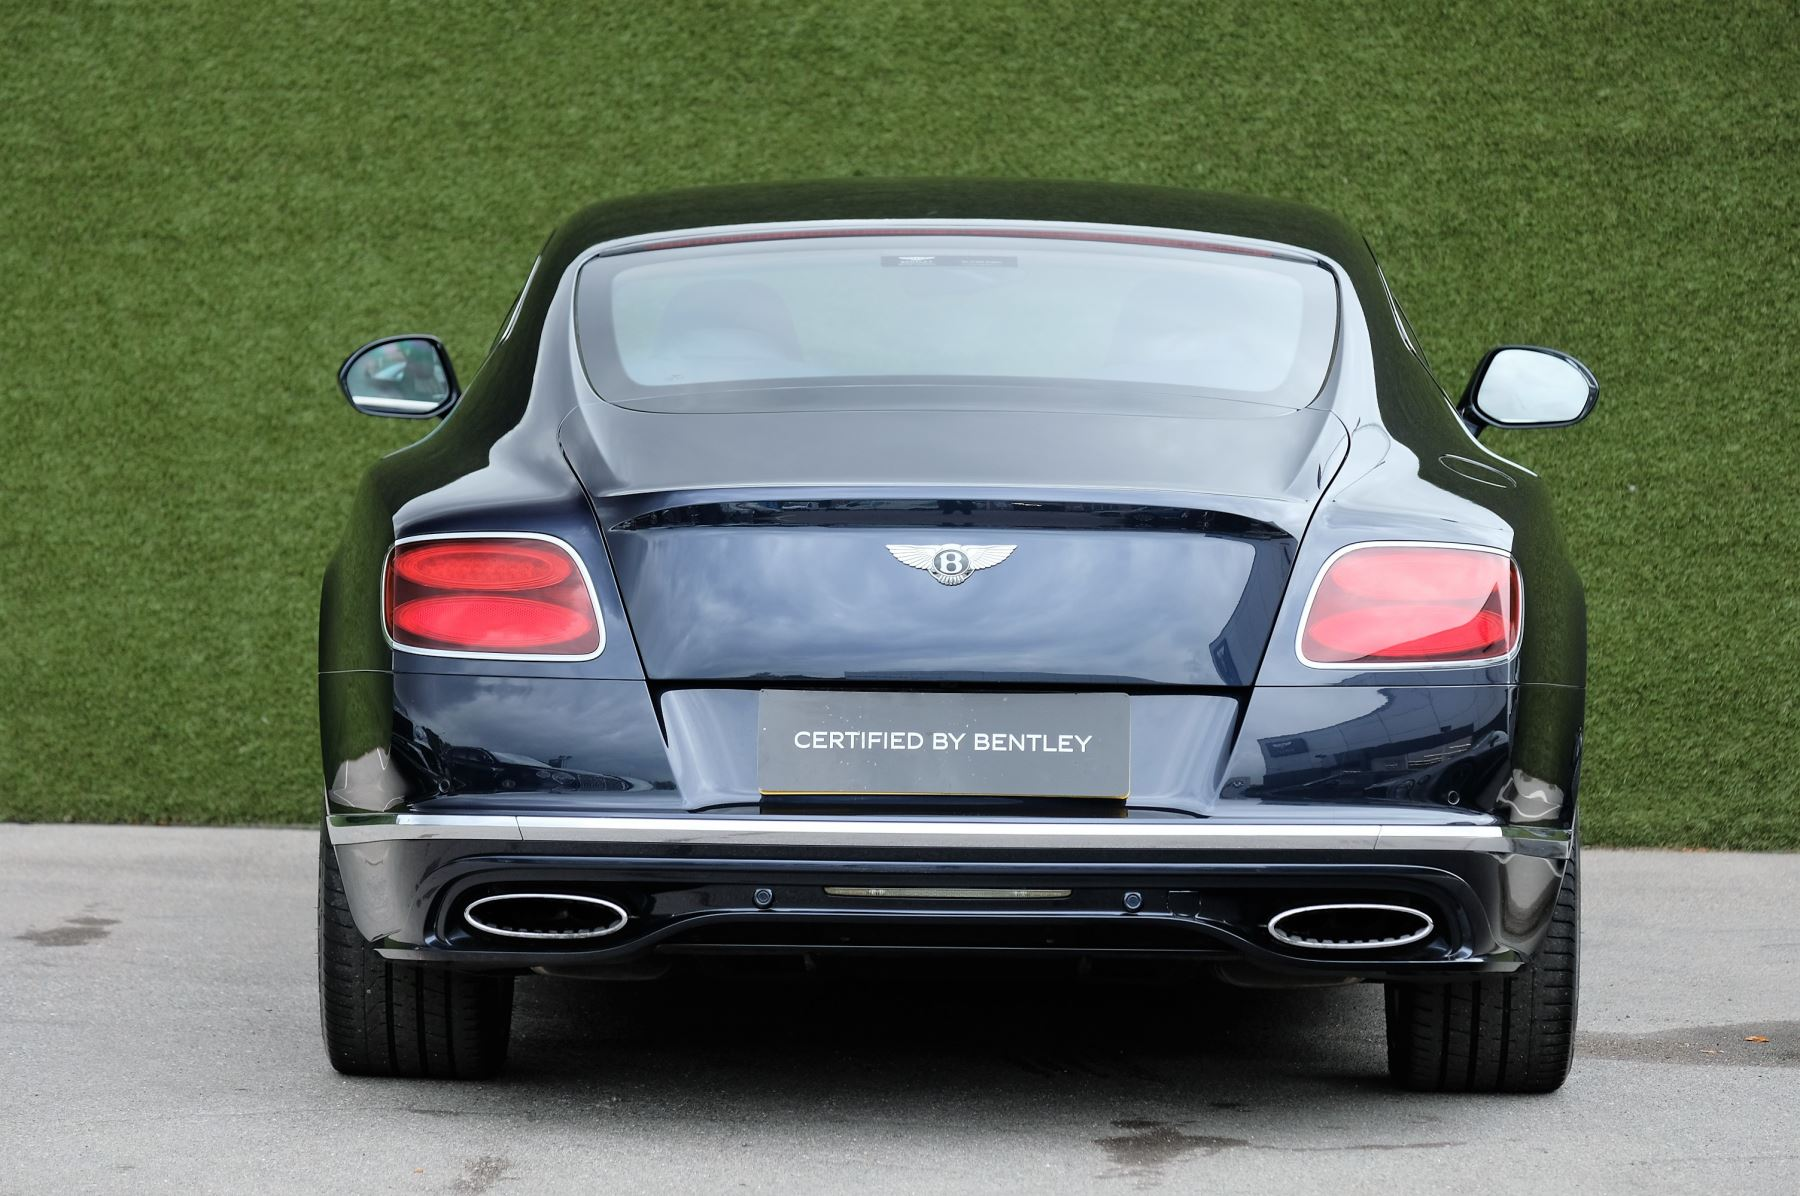 Bentley Continental GT 6.0 W12 [635] Speed - 21 inch Directional Sports Alloys - Ventilated Front Seats with Massage image 4